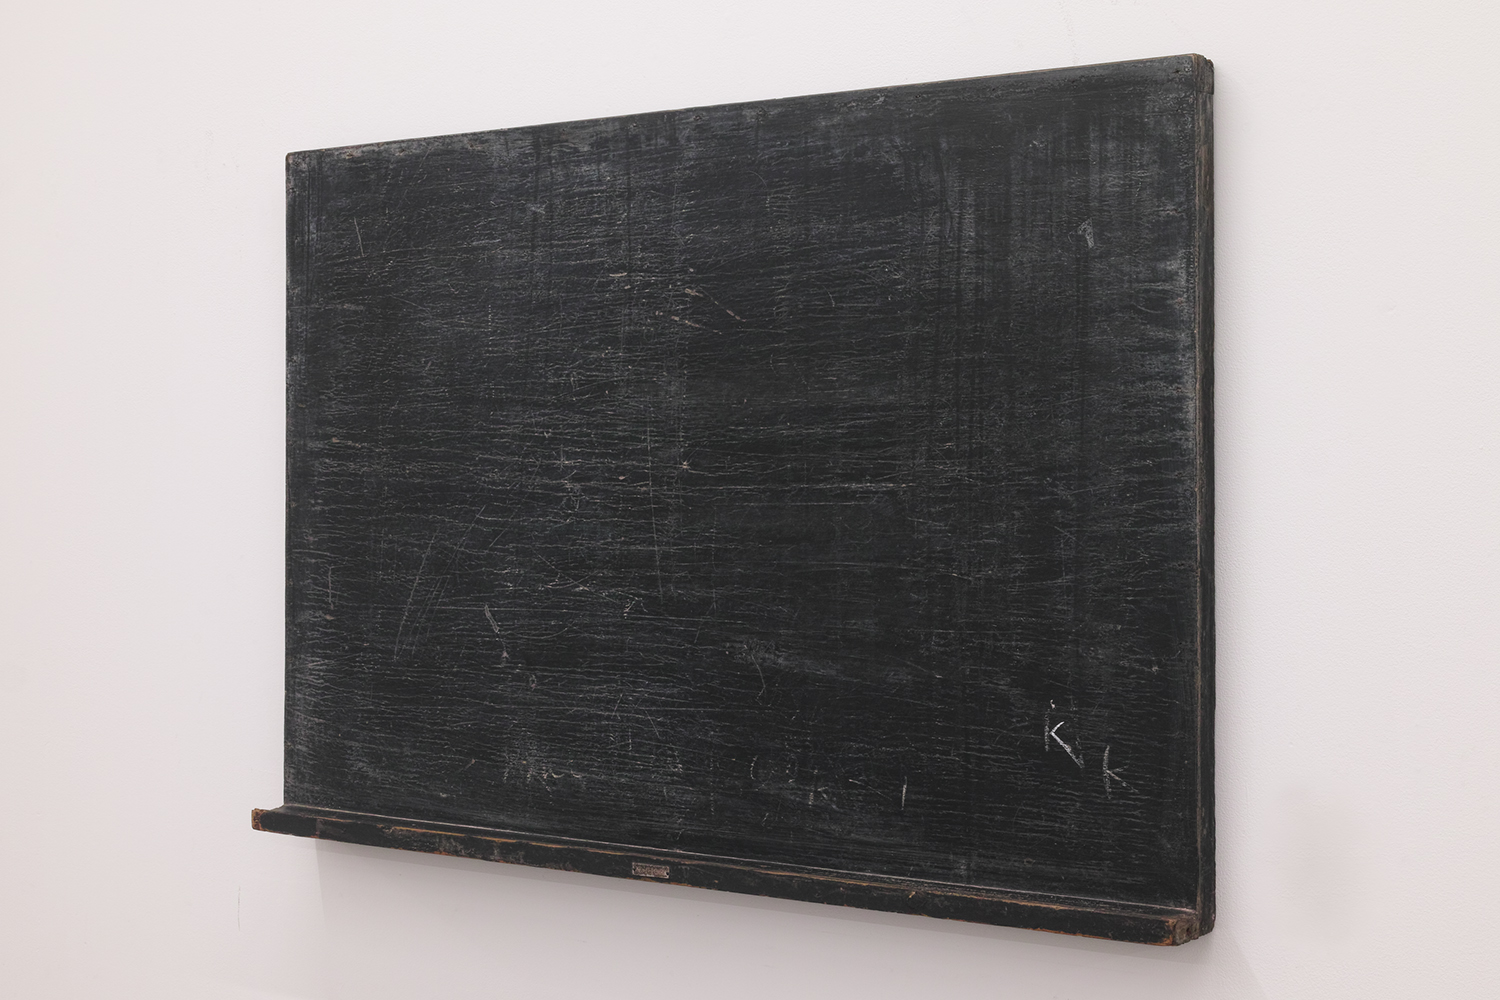 Initialize|Calk on old black board|610 x 905 x 65 mm|2020